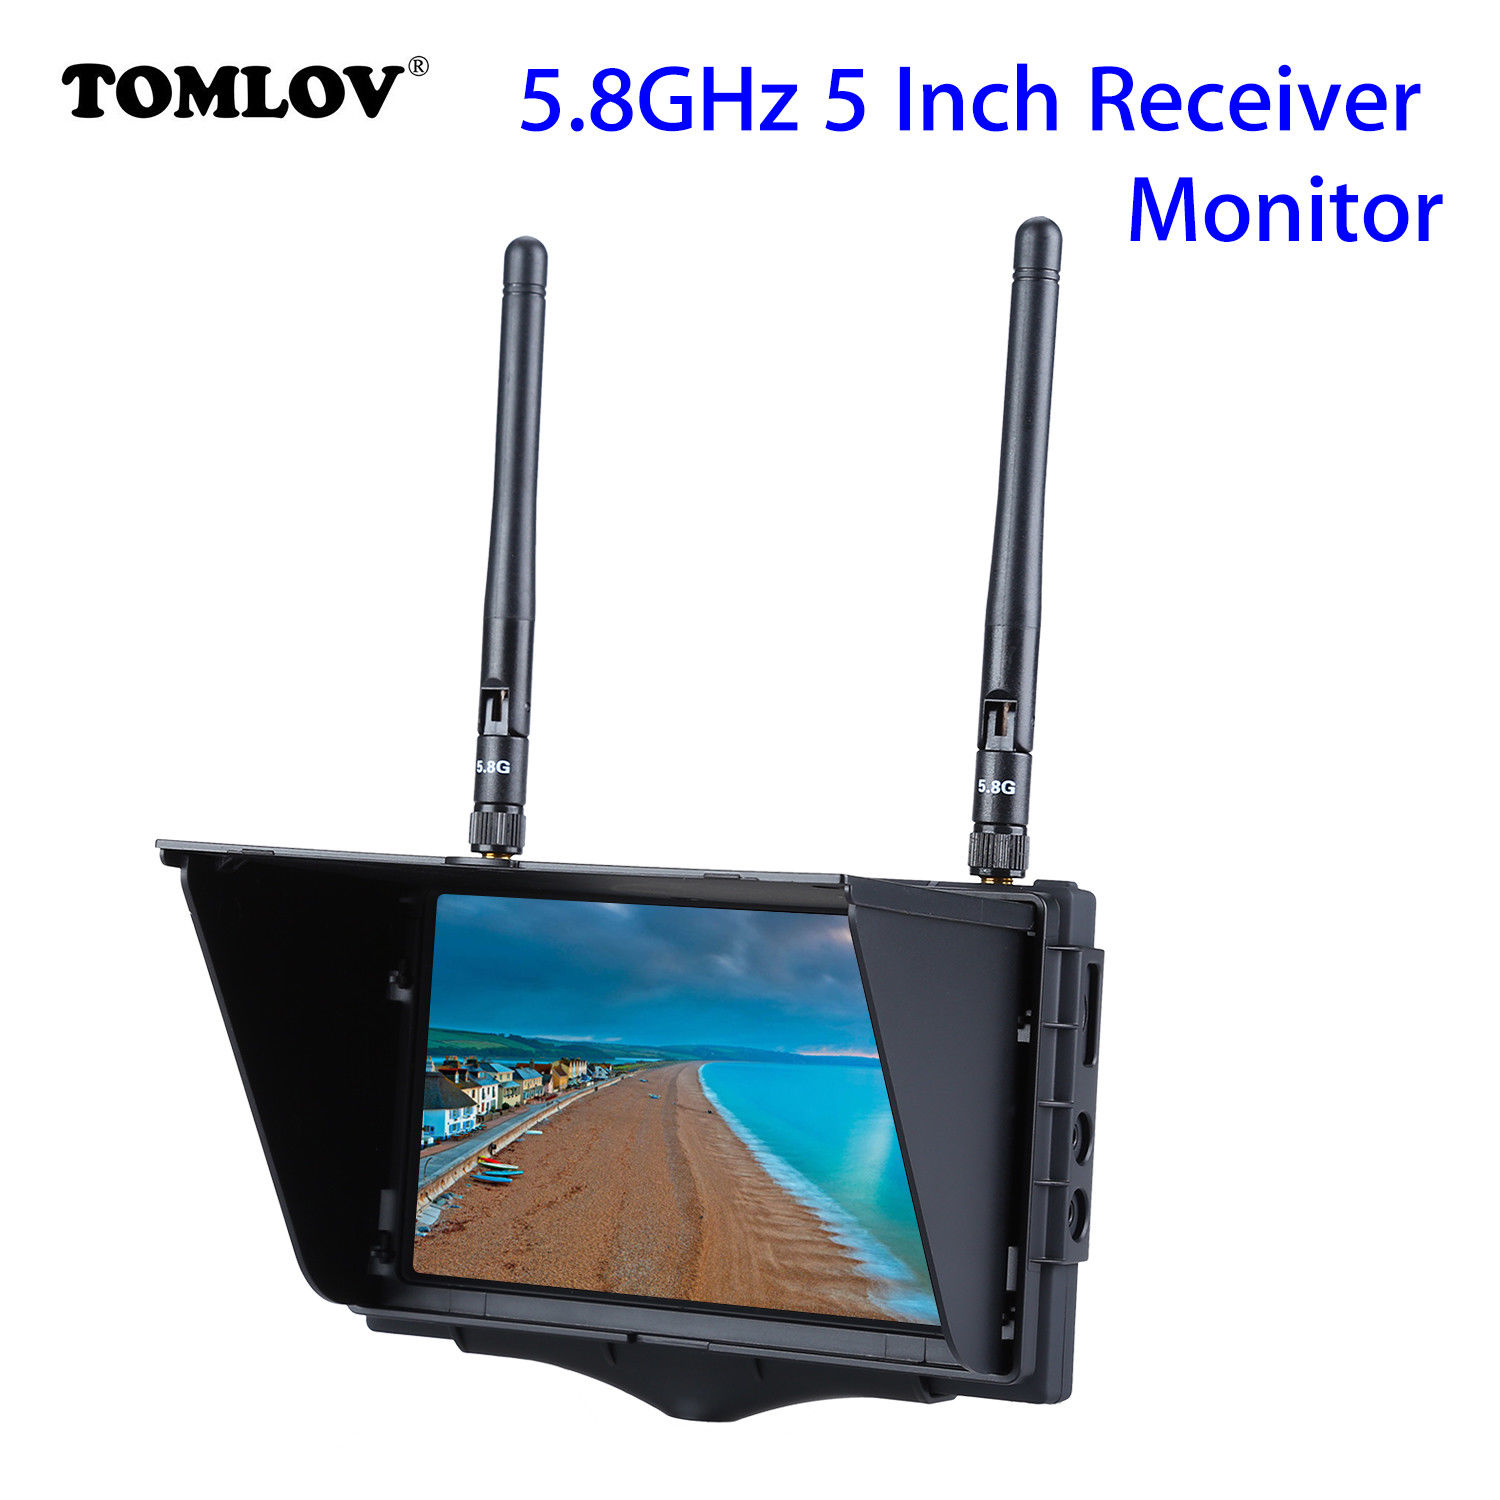 TOMLOV FX508 5.8GHz High Brightness 5 LCD Monitor Diversity Receiver With DVR Function 800x480 Pixels 40CH For RC Quadcopter